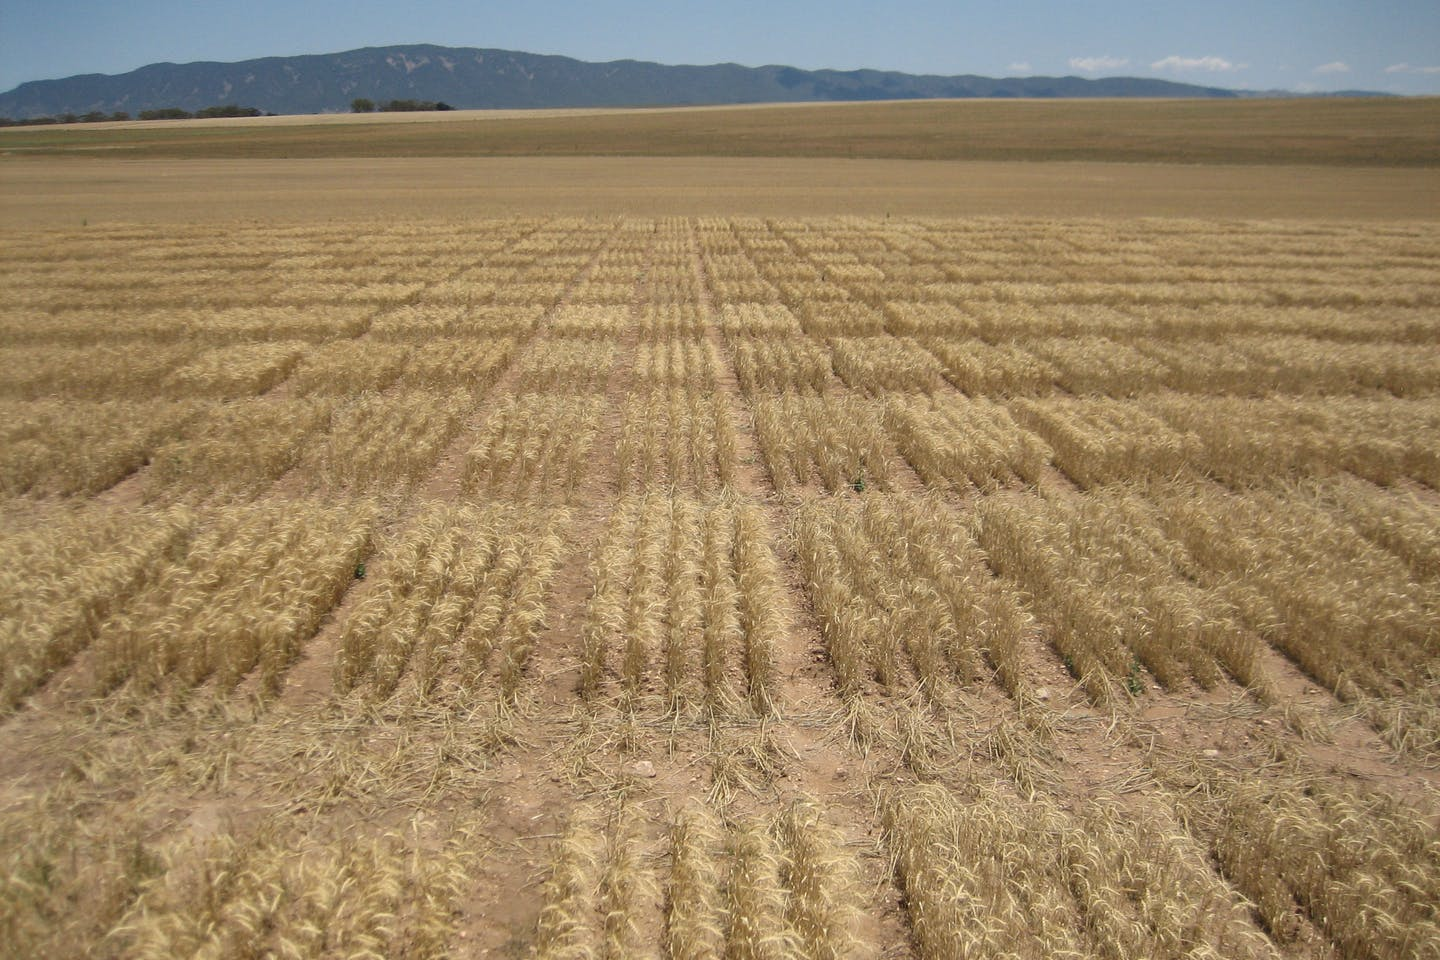 An Australian wheat field, by James Edwards/Wheat Initiative, CC BY-SA 2.0